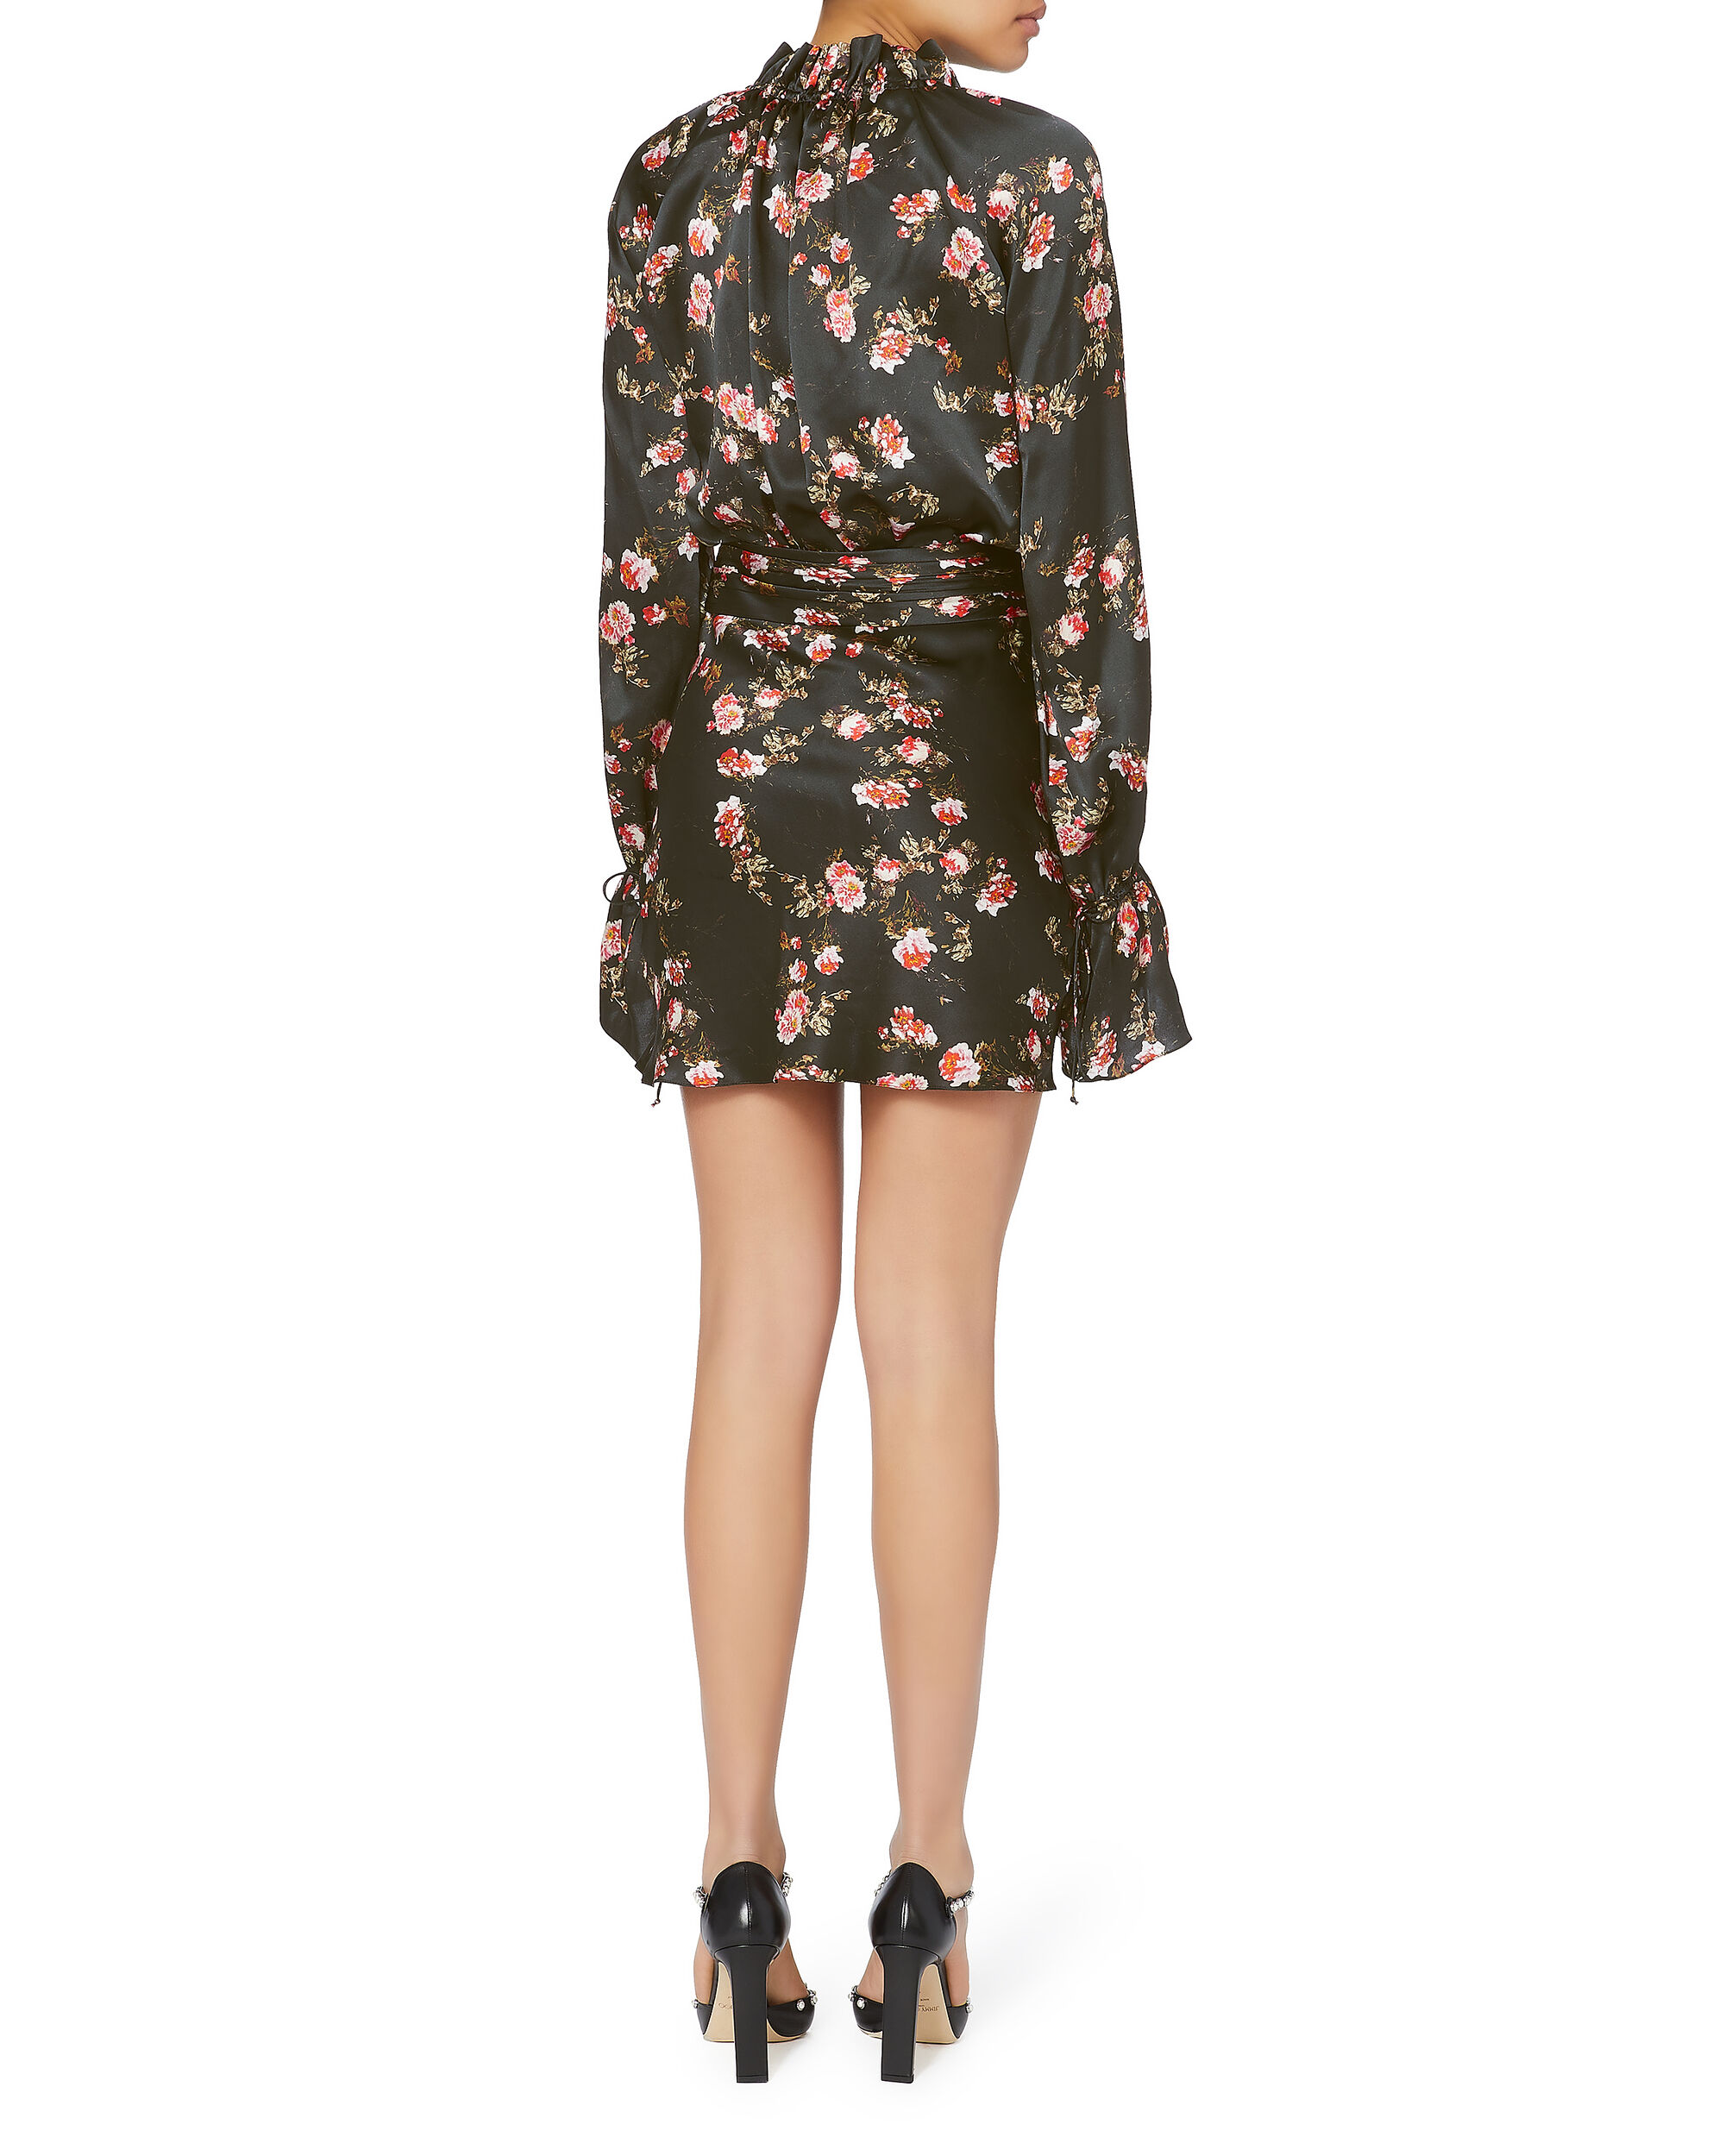 Black Rose Draped Mini Dress, PRI-FLORAL, hi-res